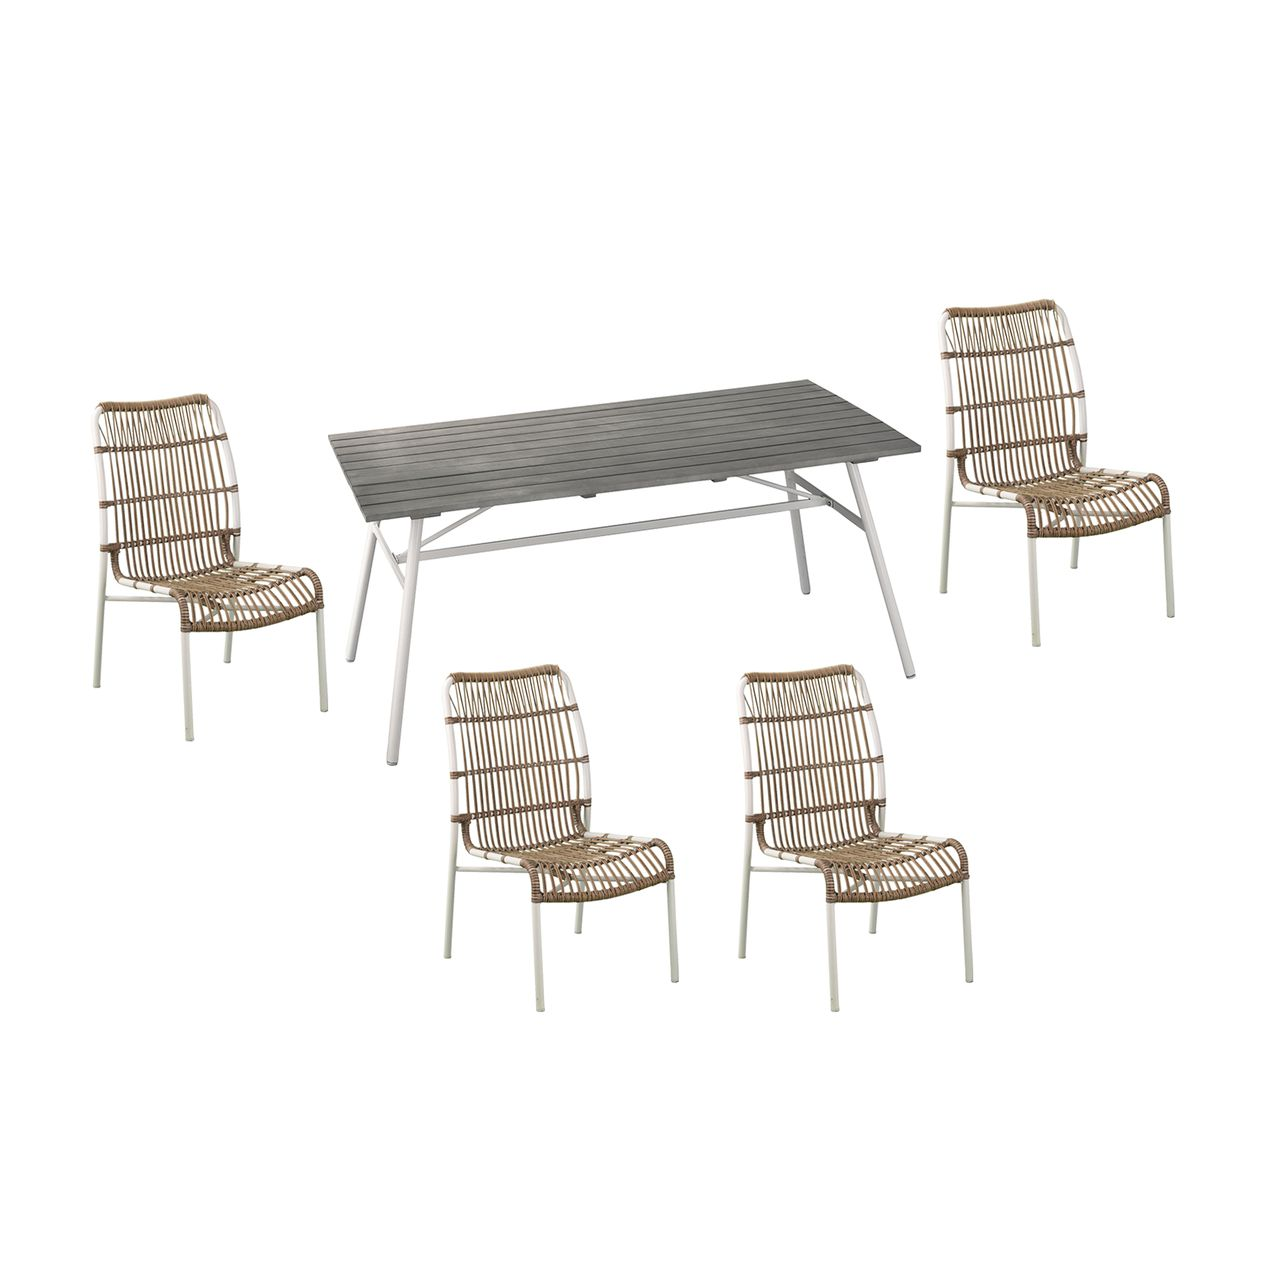 SEI Longino 5-Piece Outdoor Dining Set in Gray/ White / Natural